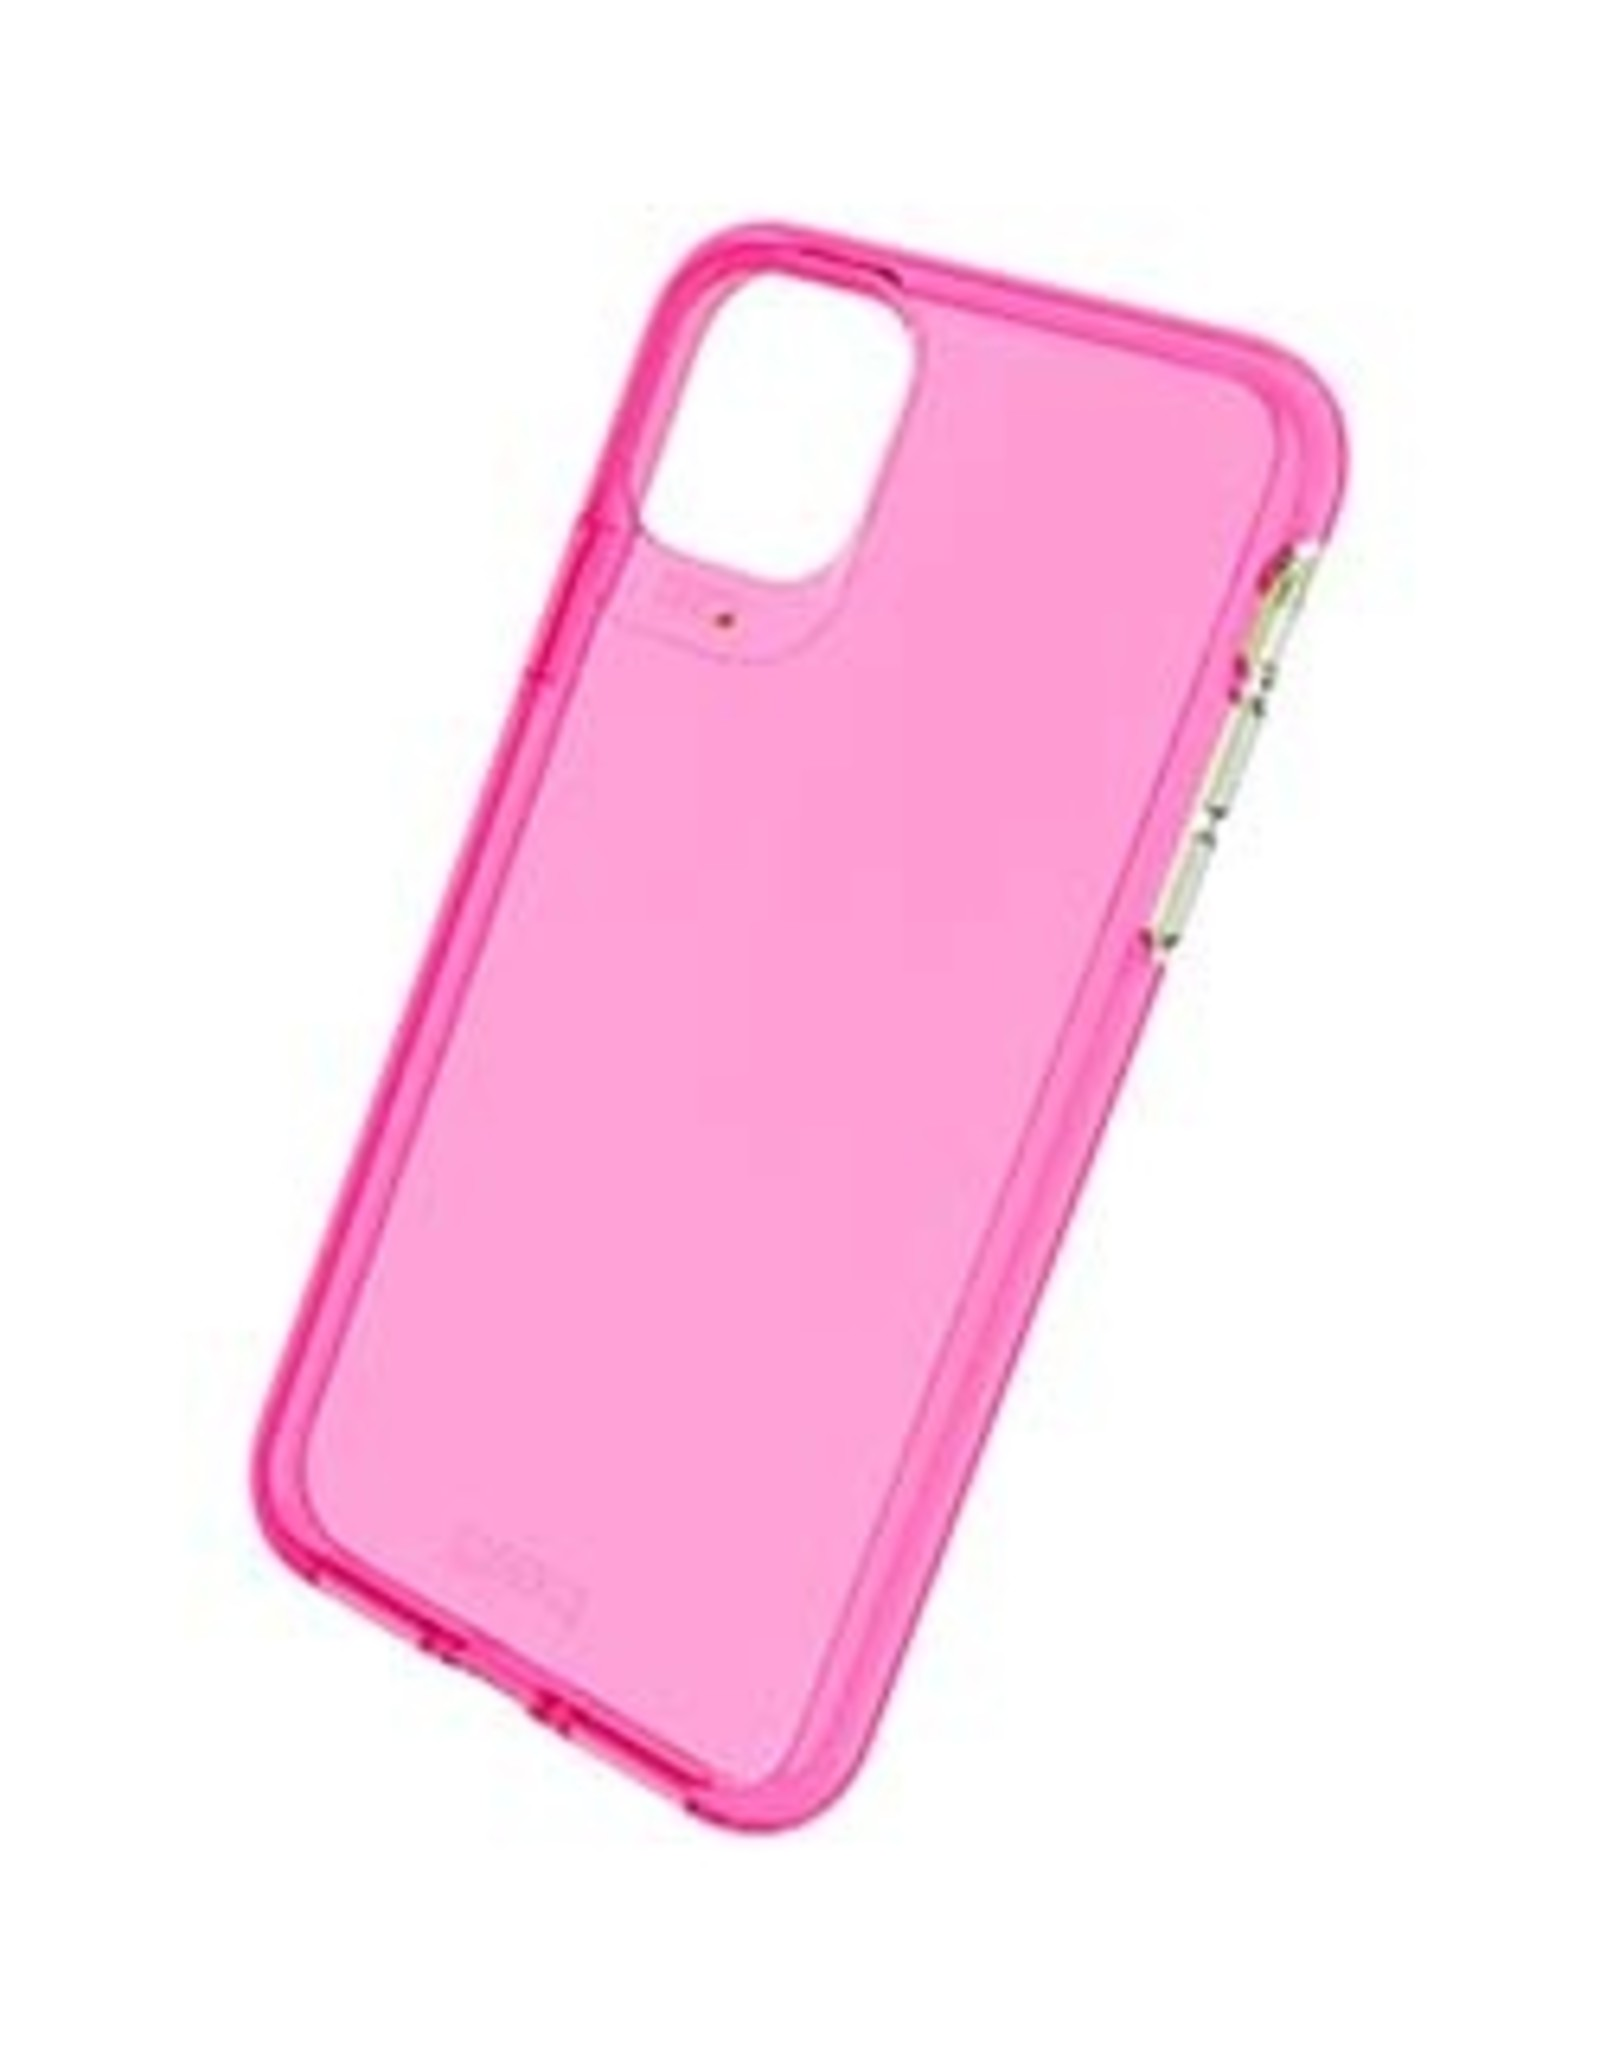 GEAR4 GEAR4 | iPhone 11 Pro Max  D3O Pink Crystal Palace Neon Case 15-04786